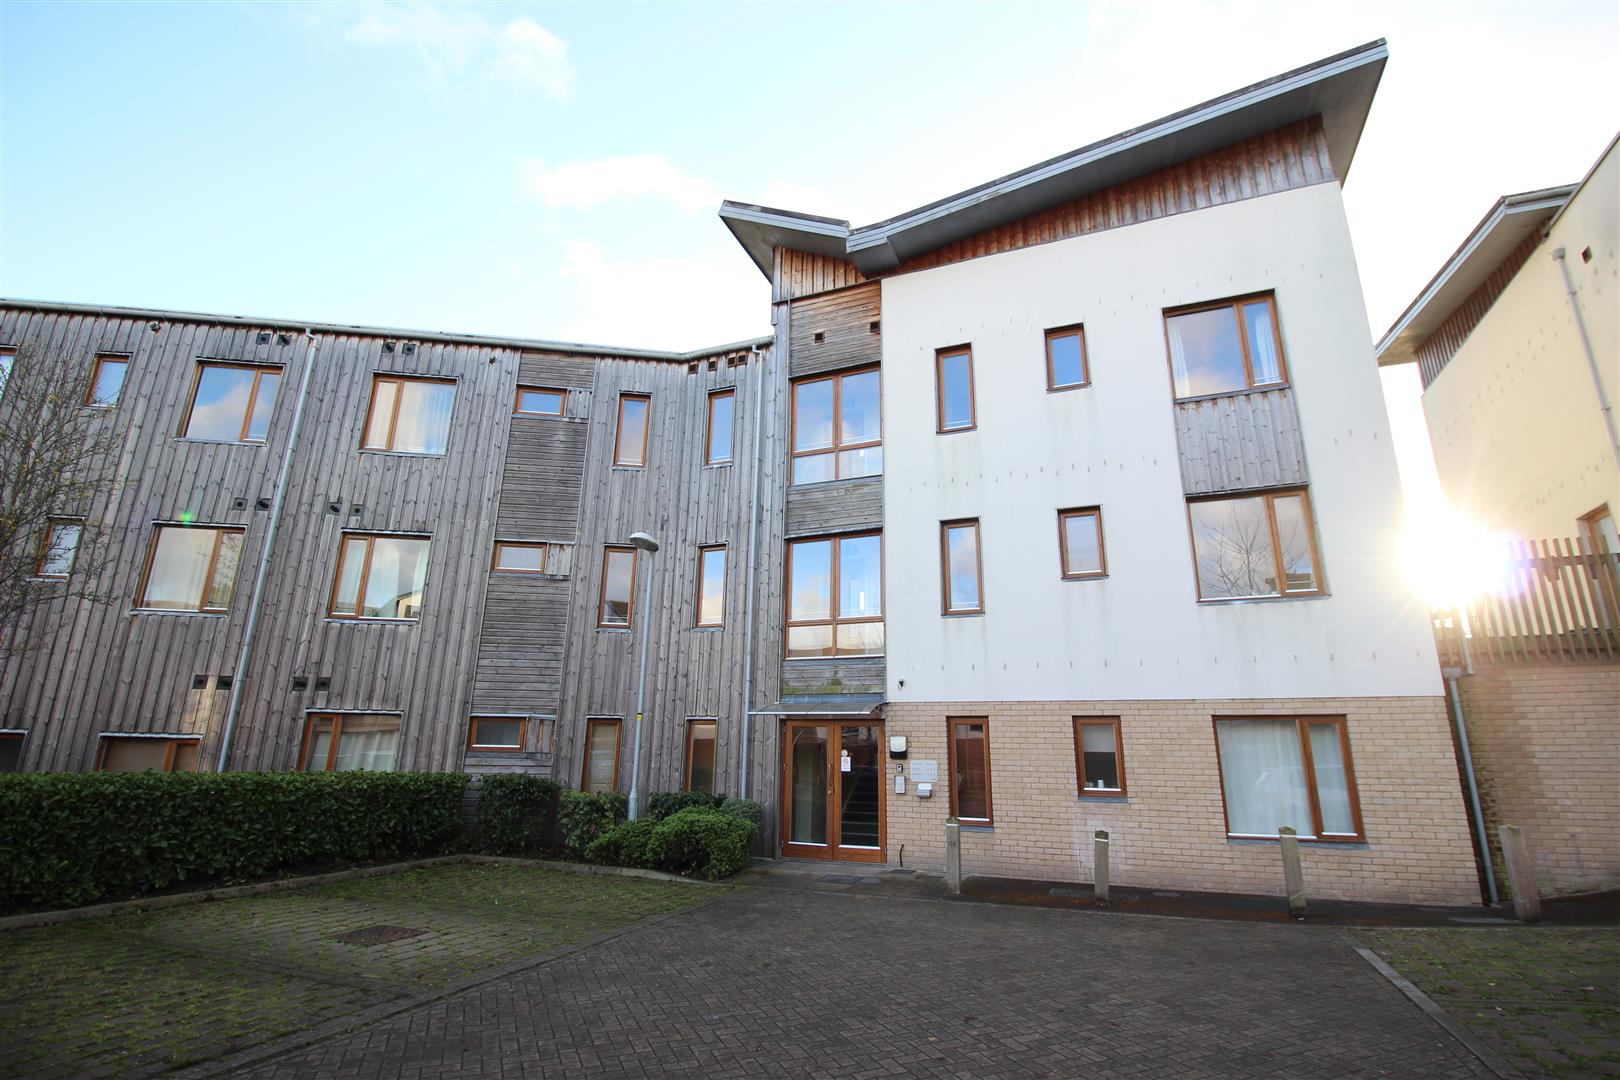 2 Bedrooms Flat for sale in Great Mead, Chippenham